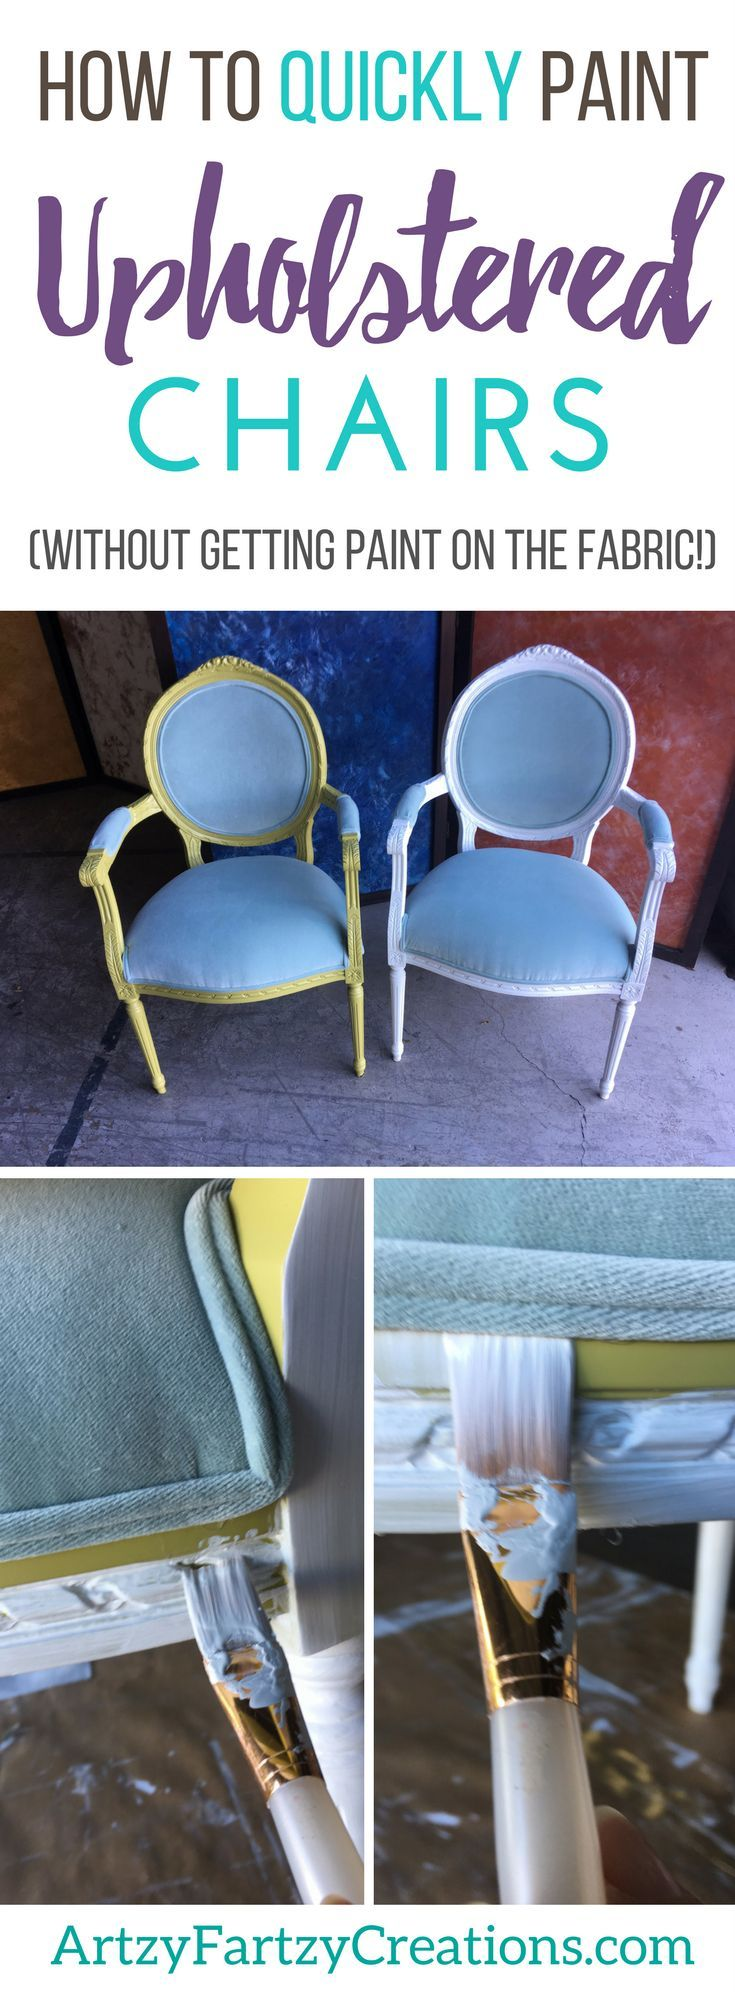 A Quick And Easy Way To Paint Upholstered Chairs Without Removing The Upholstery How To Paint Upholstered Chair Frames Without Getting Paint On The Fabric Cush